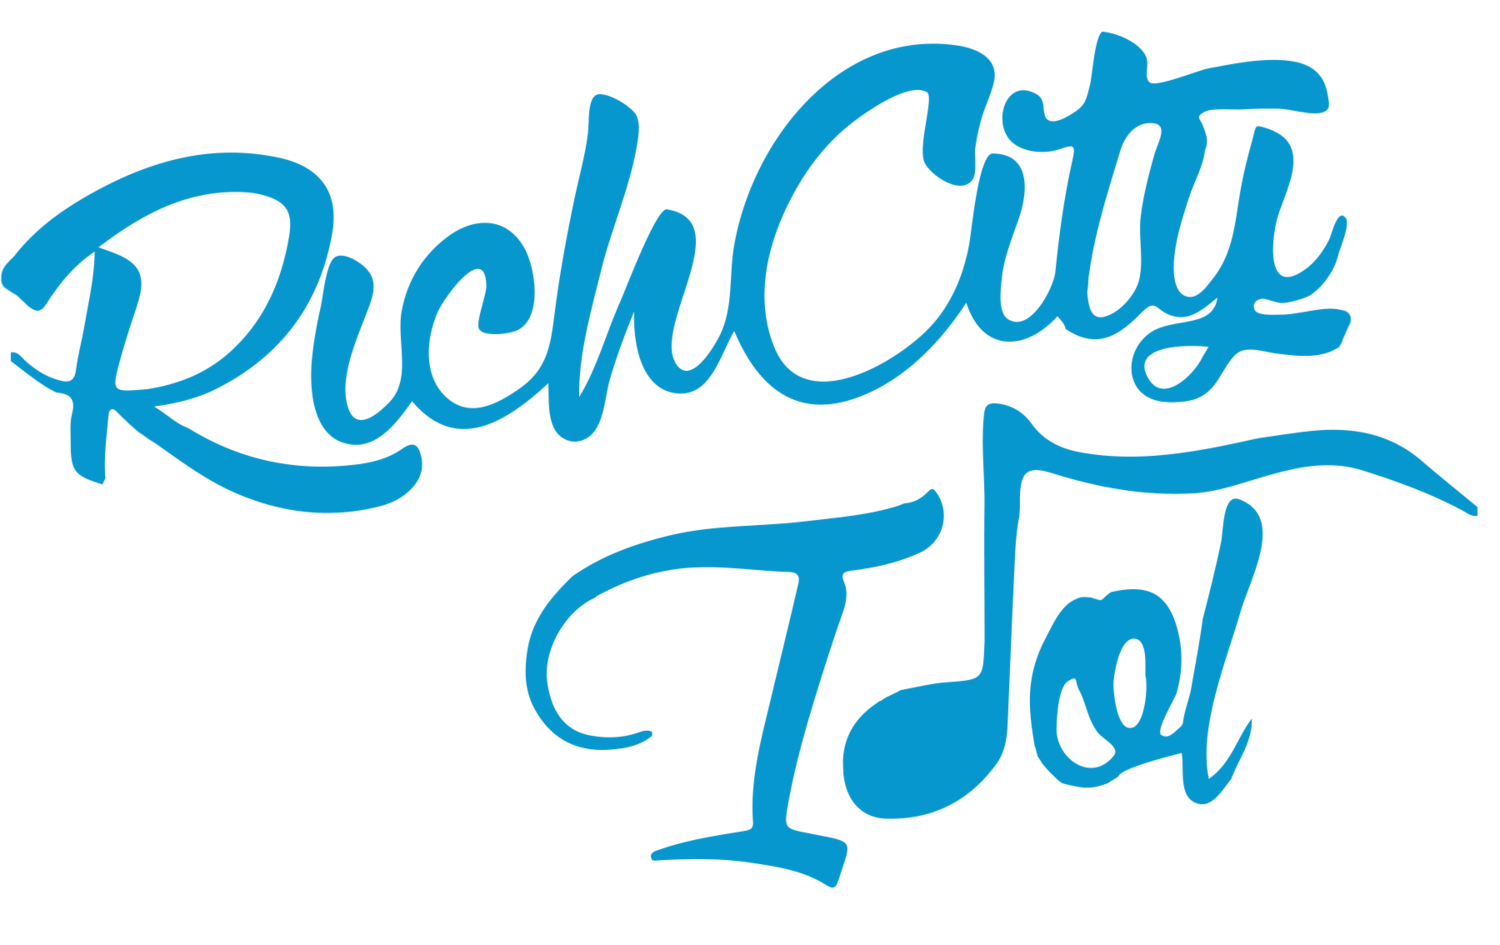 RichCity Idol